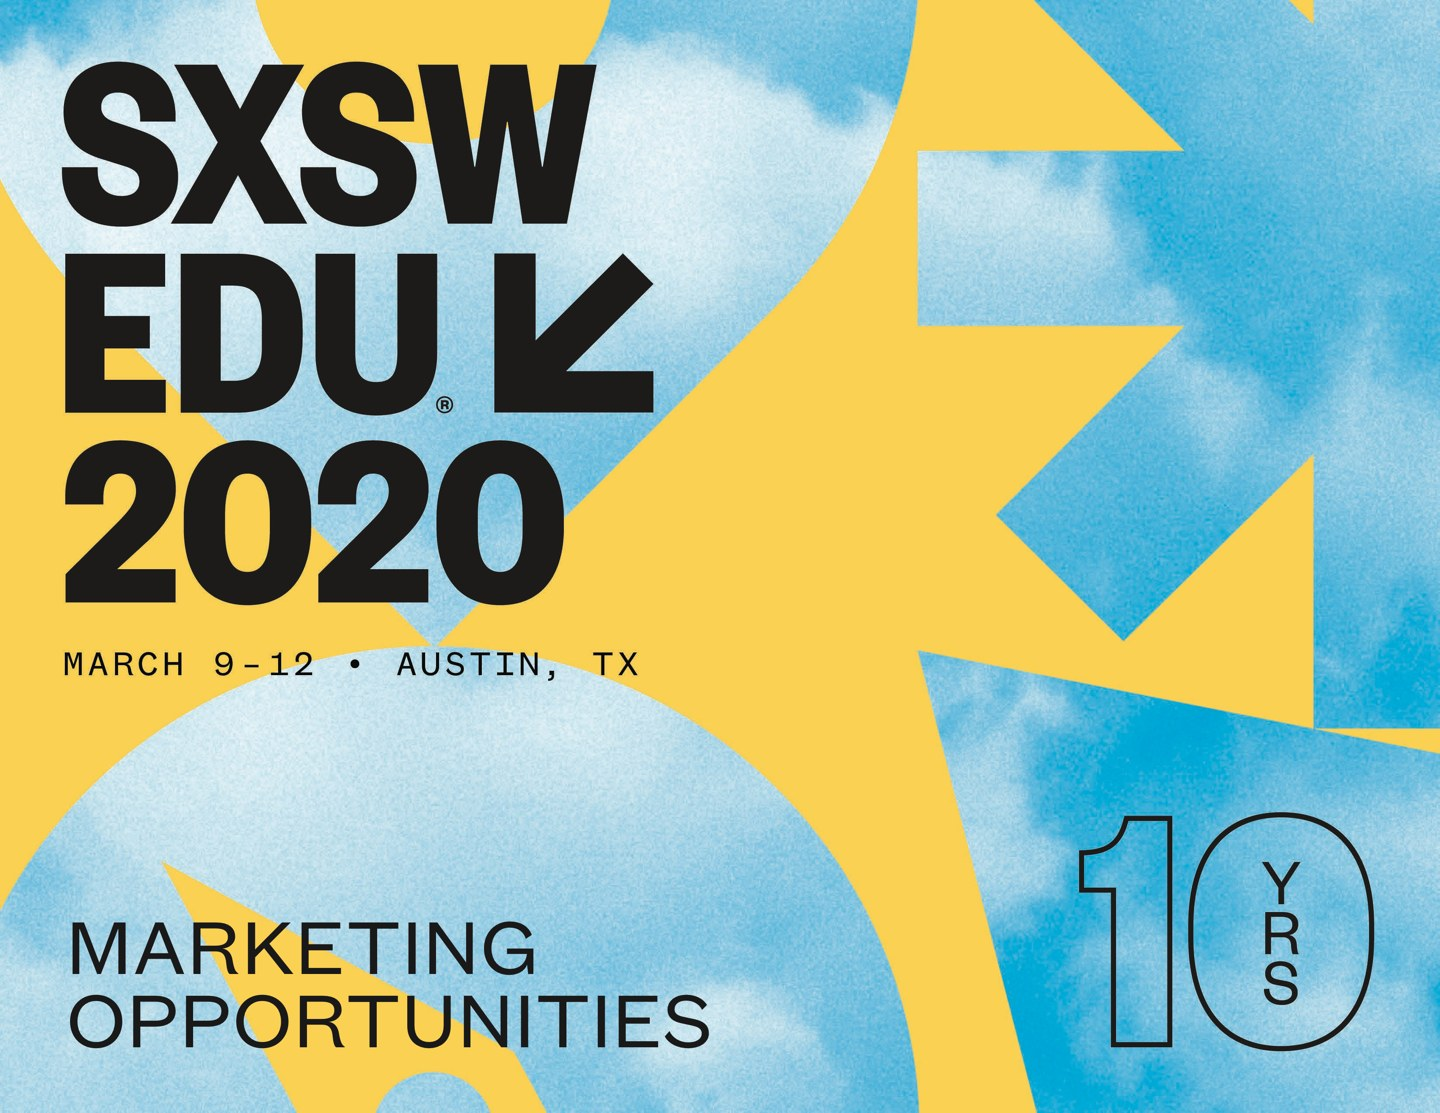 SXSW EDU 2020 Marketing Brochure Cover